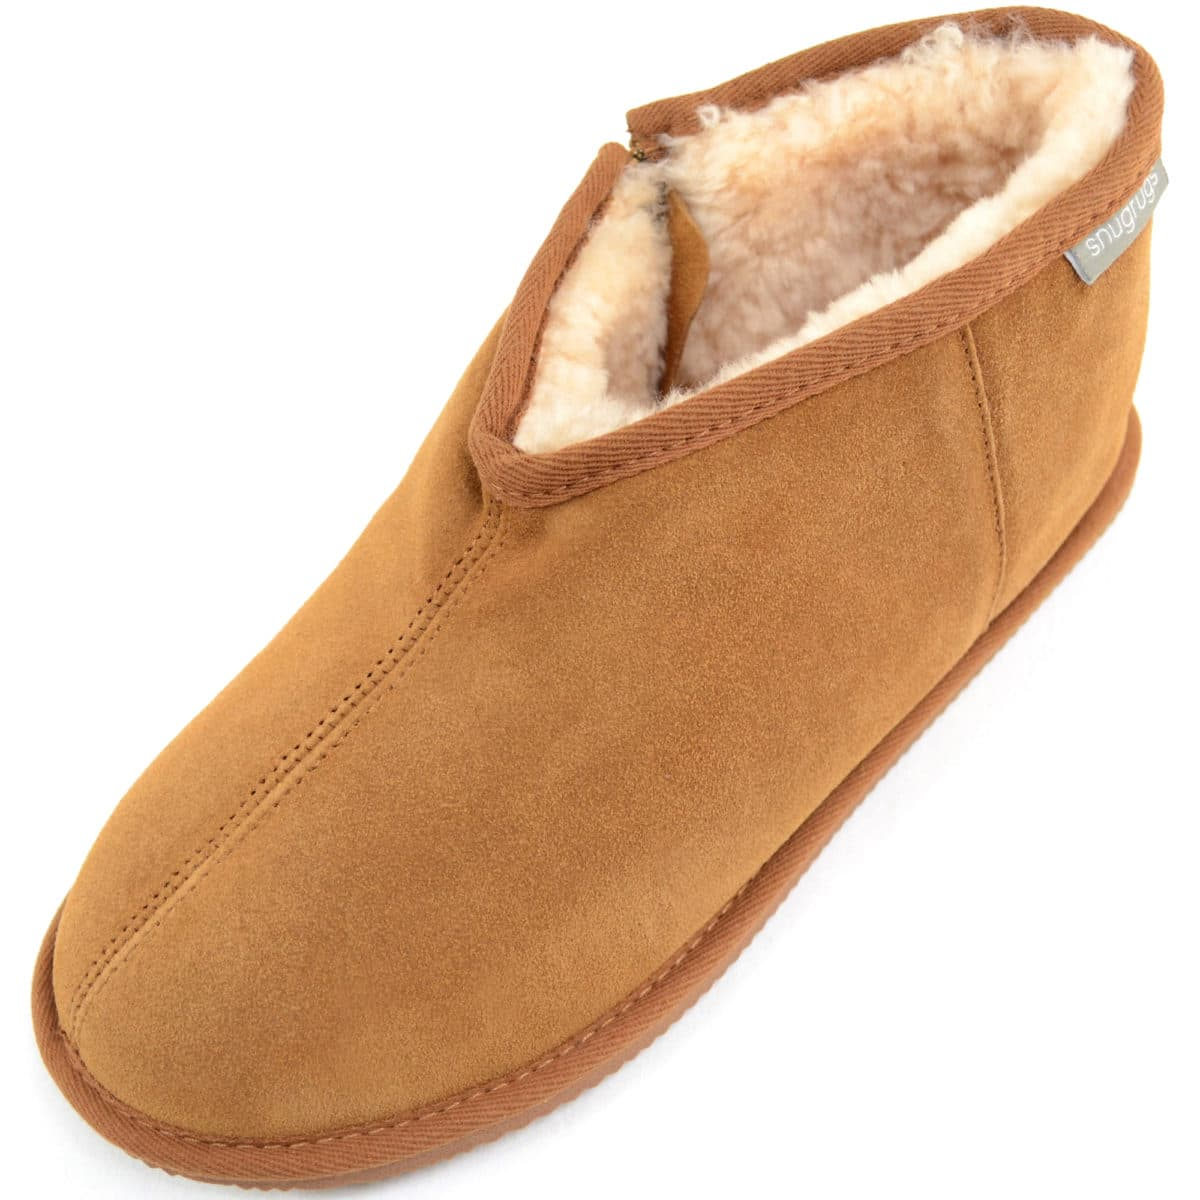 Benji Snugrugs Sheepskin Slipper Chestnut